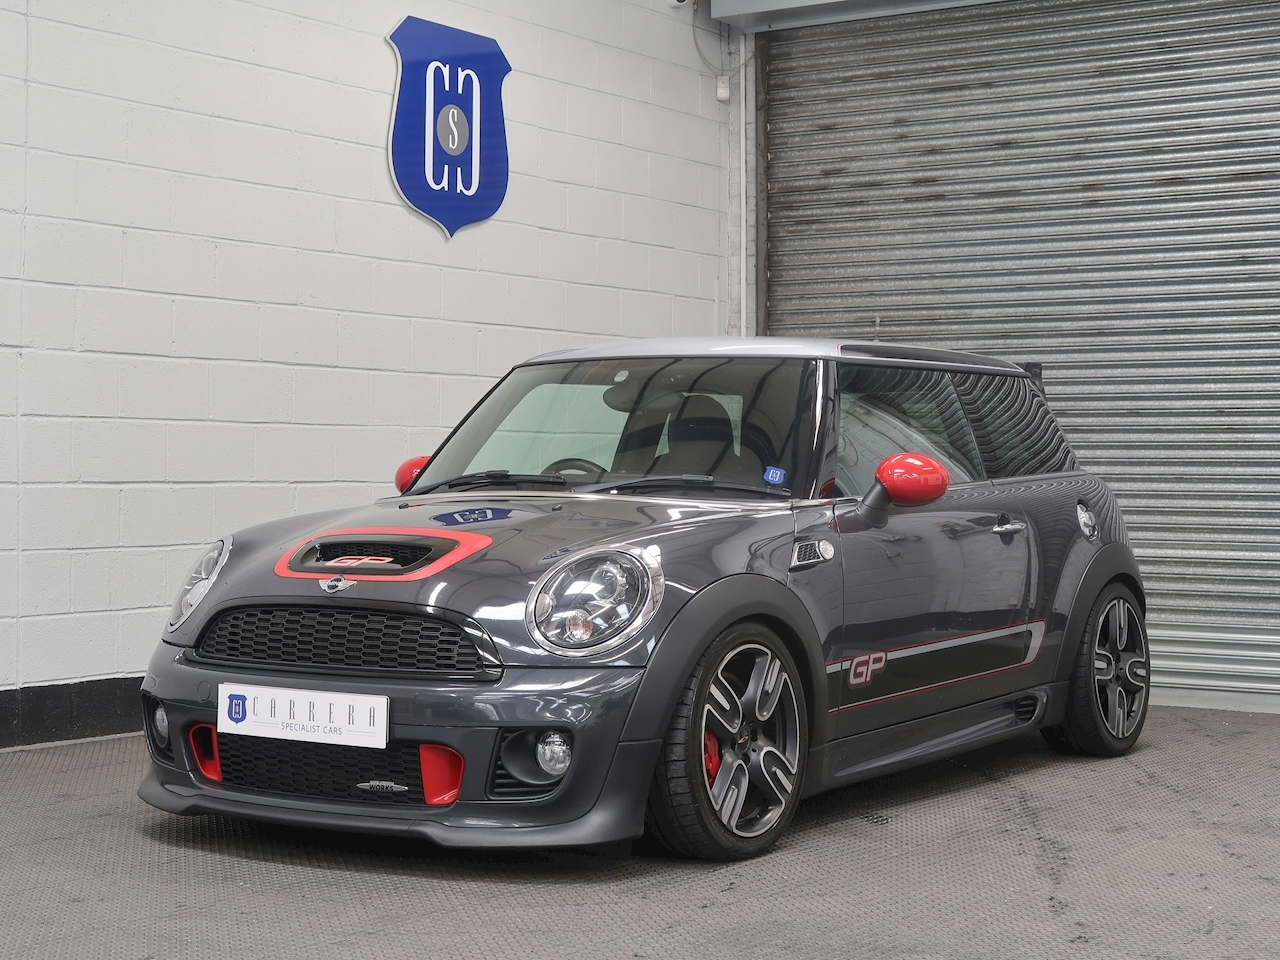 MINI 1.6 John Cooper Works GP Hatchback 3dr Petrol Manual (165 g/km, 211 bhp)